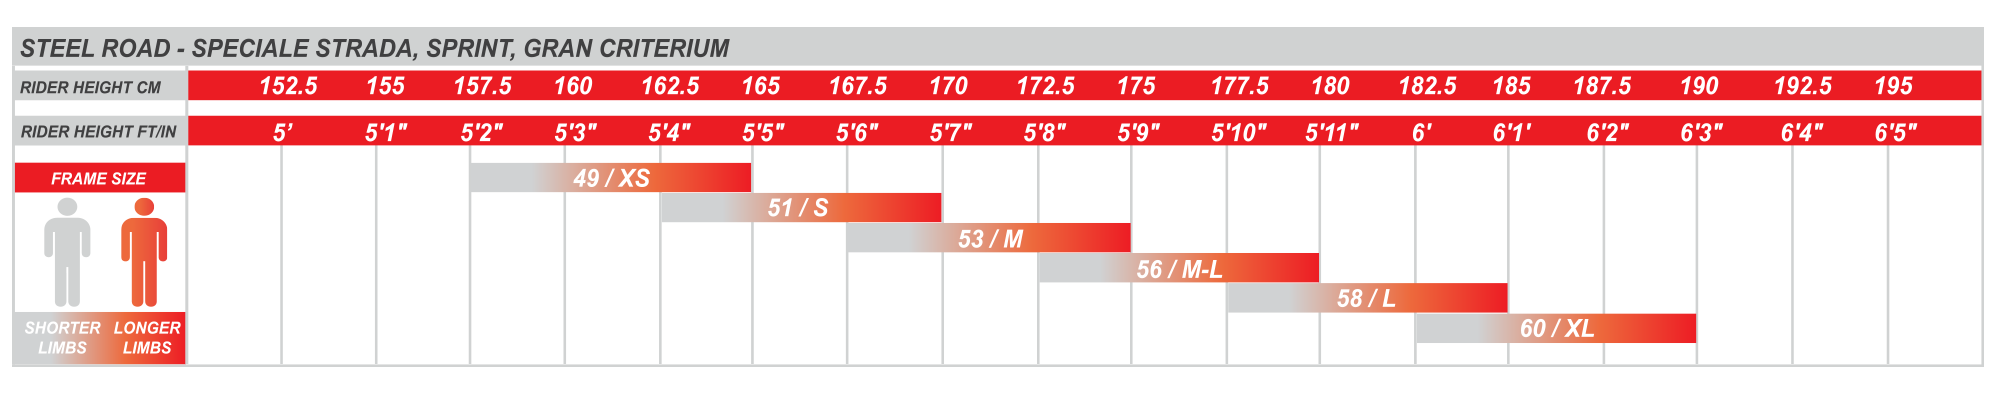 geo-size-chart-steel-road-2018.png